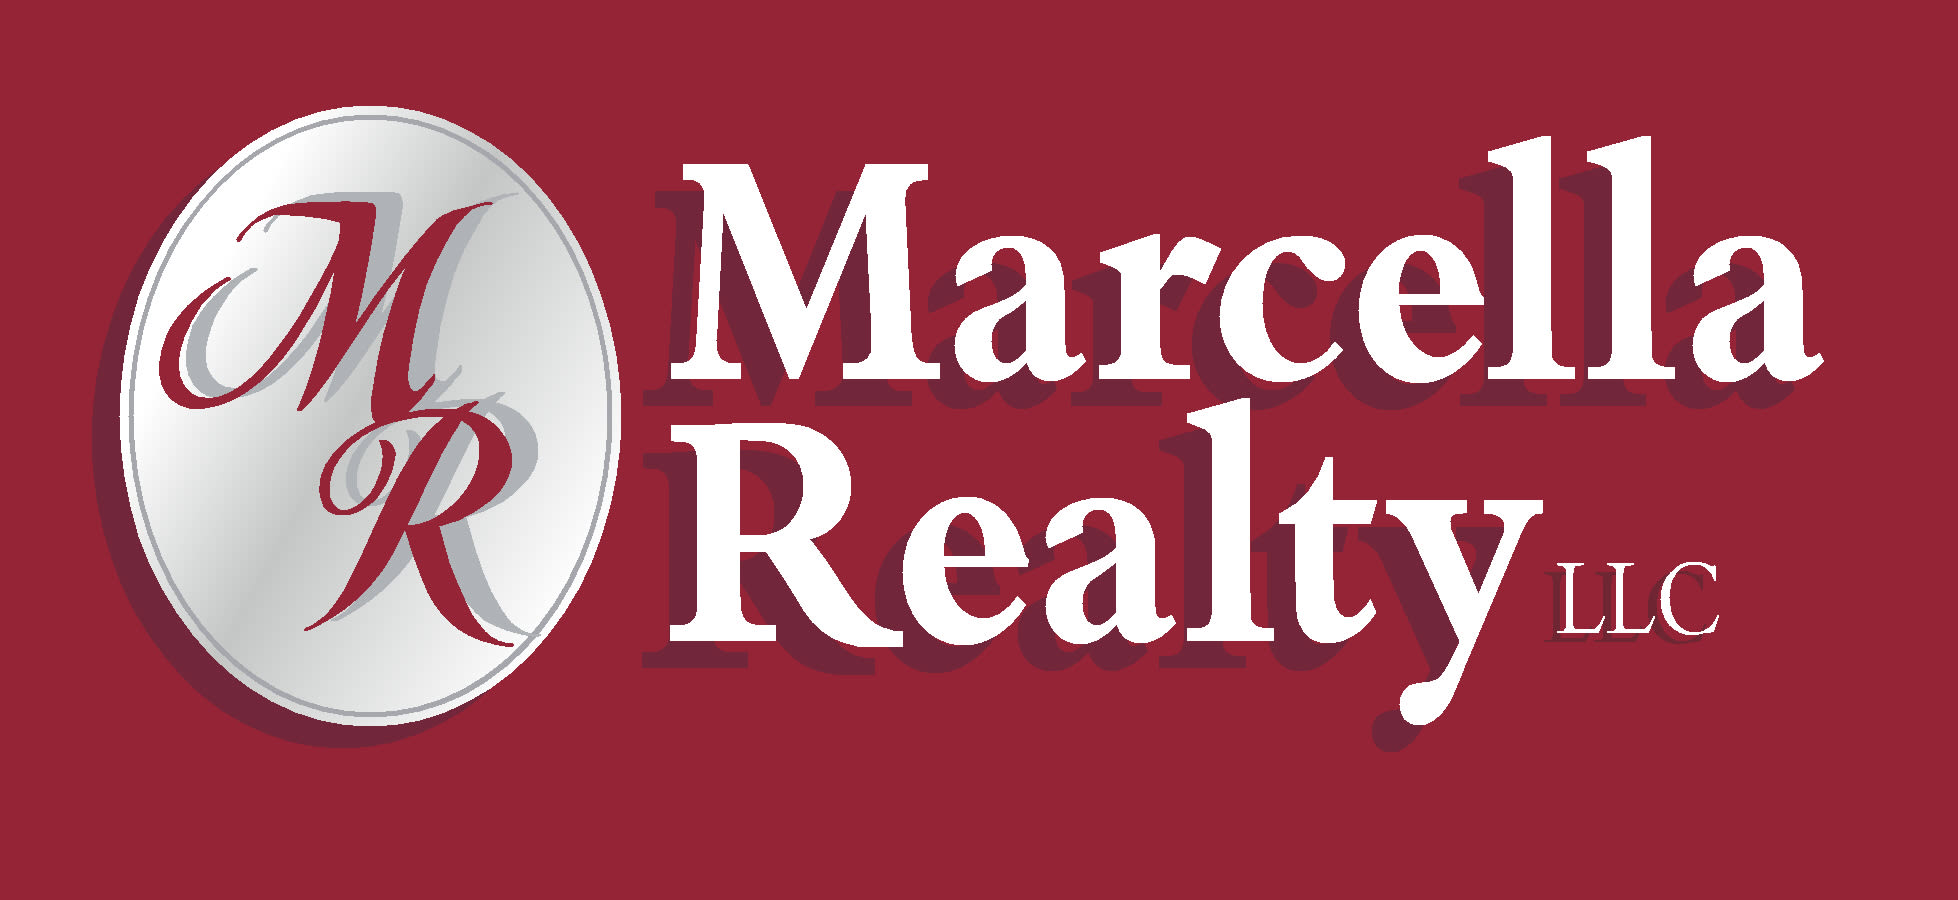 Marcella Realty LLC